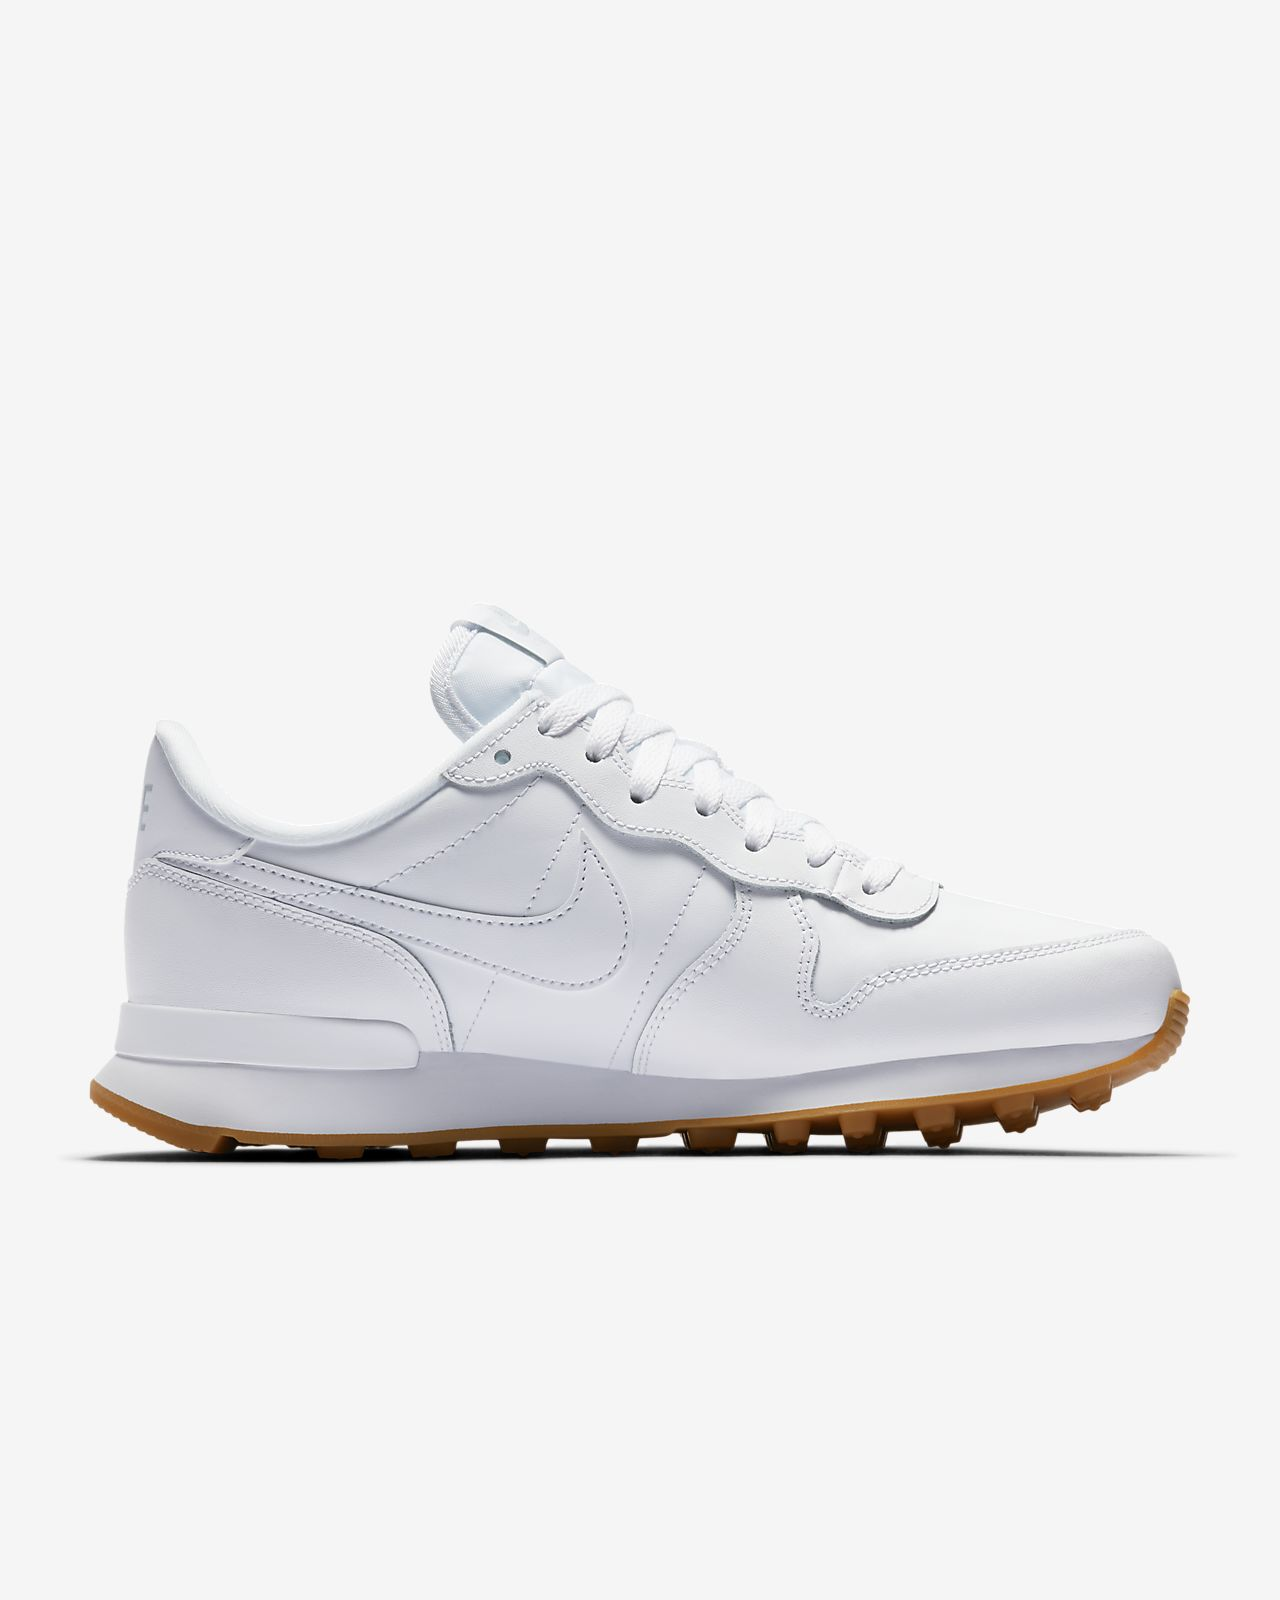 another chance later first rate Nike Internationalist Damenschuh